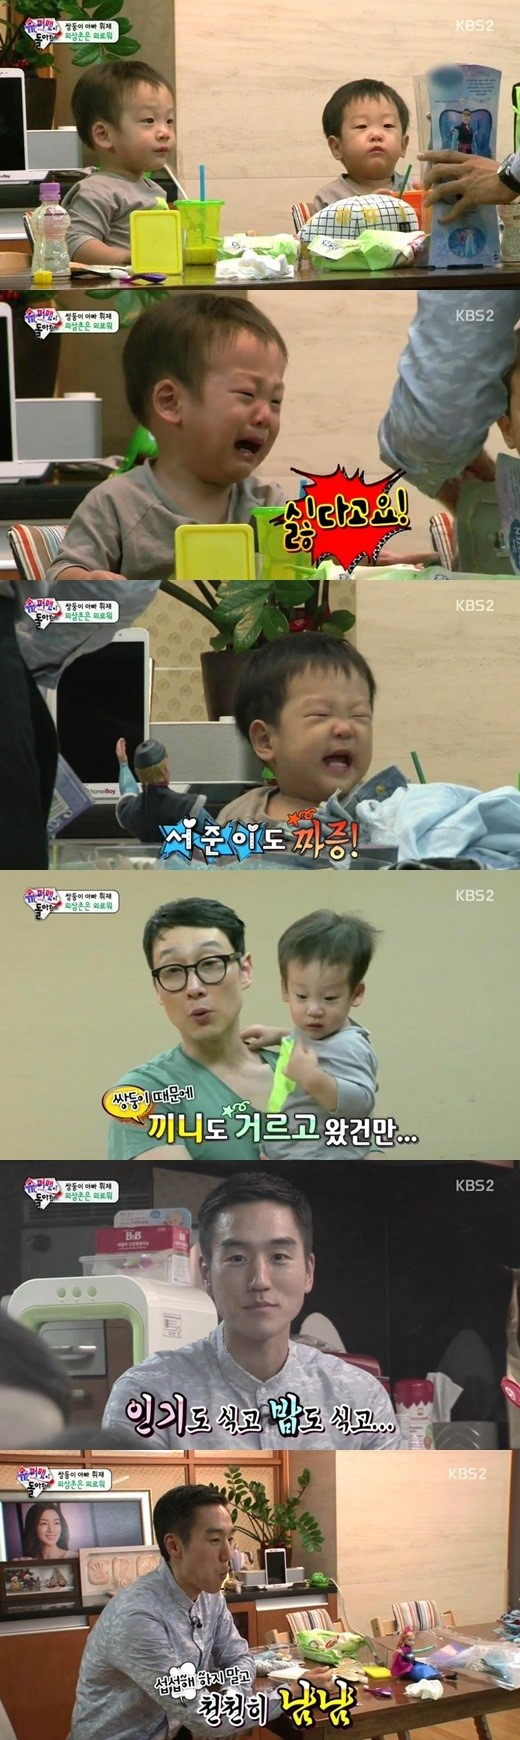 928 superman returns twins stills